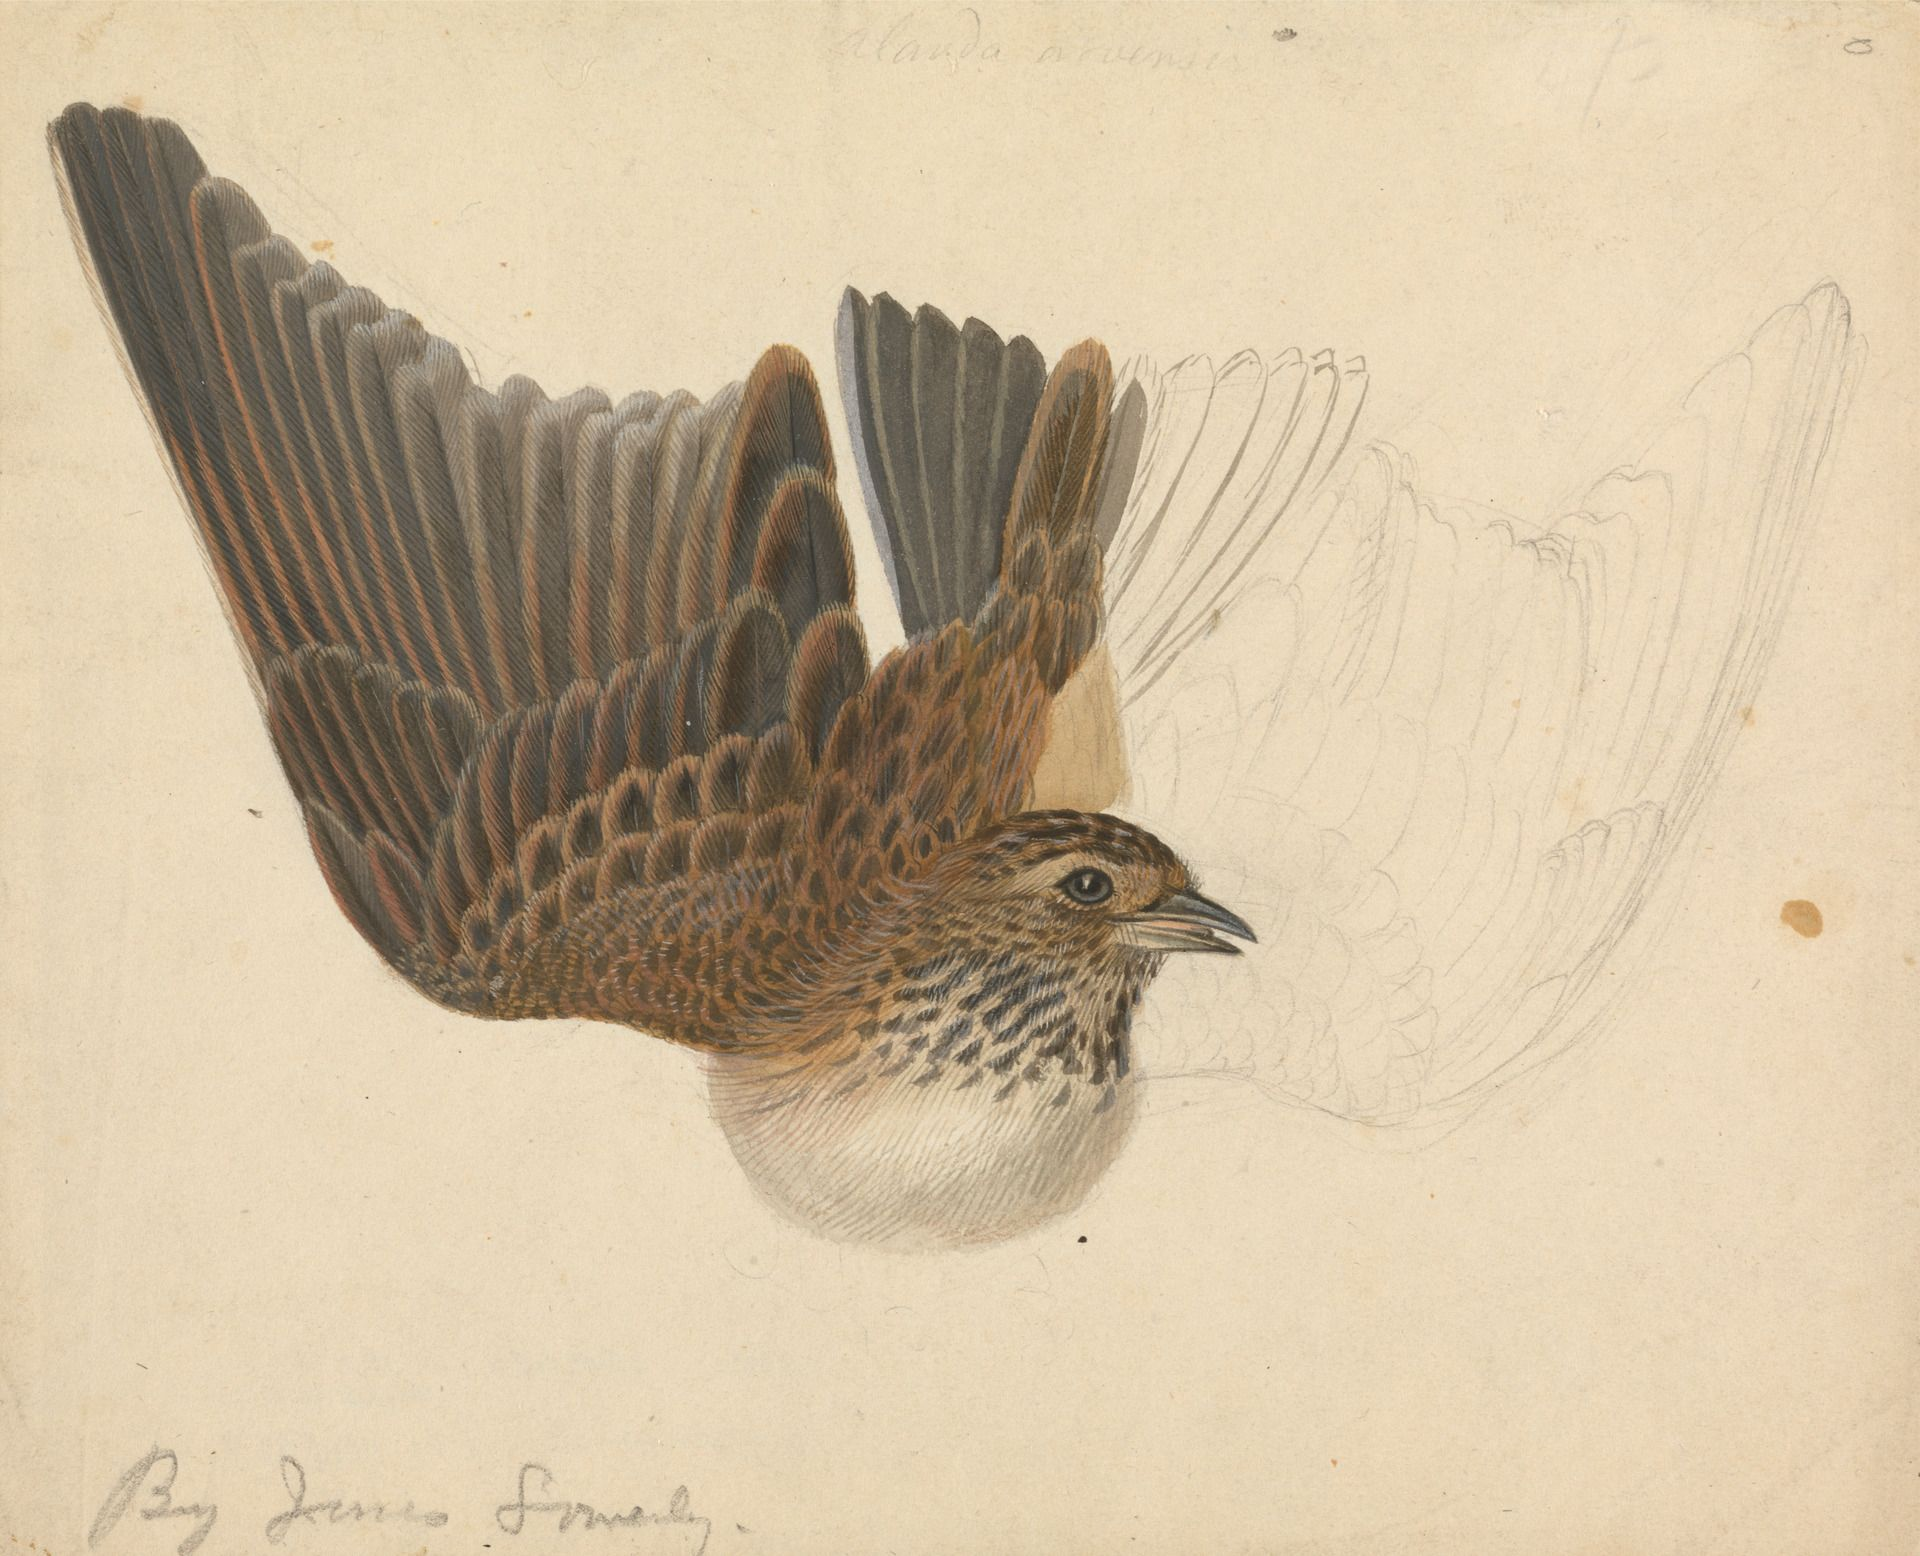 James Sowerby, 1756-1822, A Bird with Wings Spread, undated, Watercolor, gouache, and graphite on medium, slightly textured, cream wove paper, Yale Center for British Art, Paul Mellon Collection